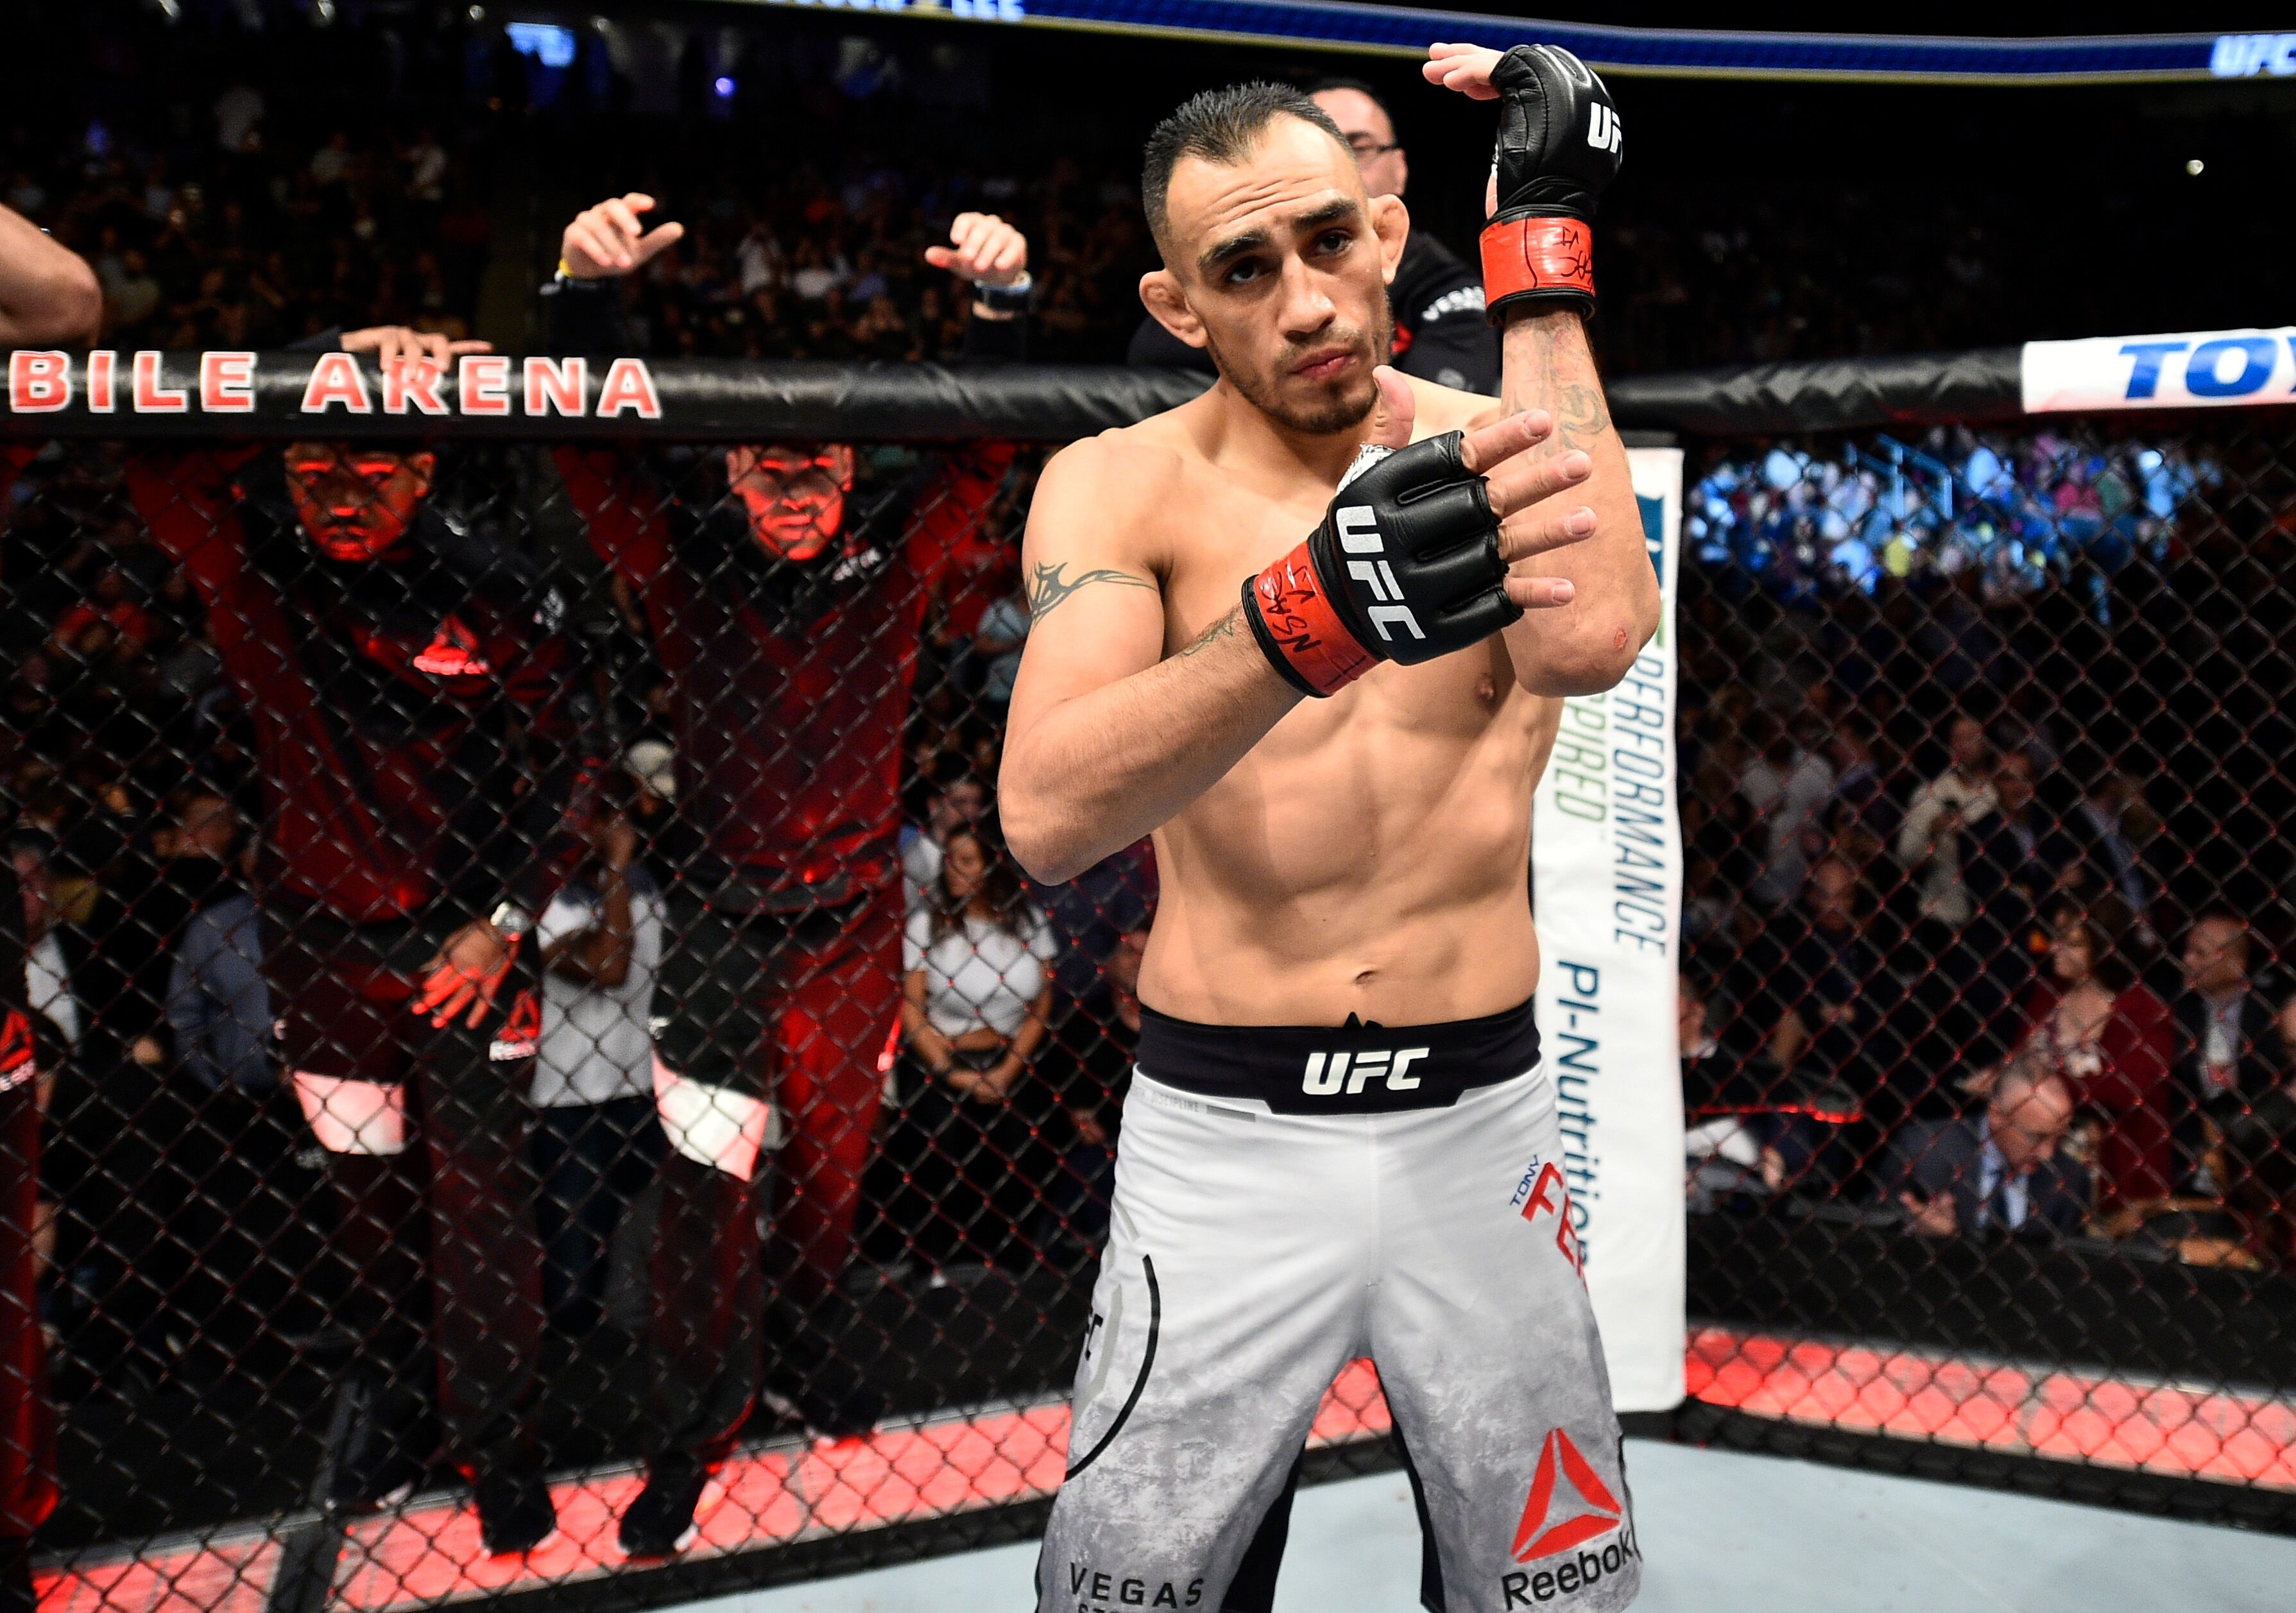 UFC 216: Tony Ferguson submits Kevin Lee to win interim UFC title